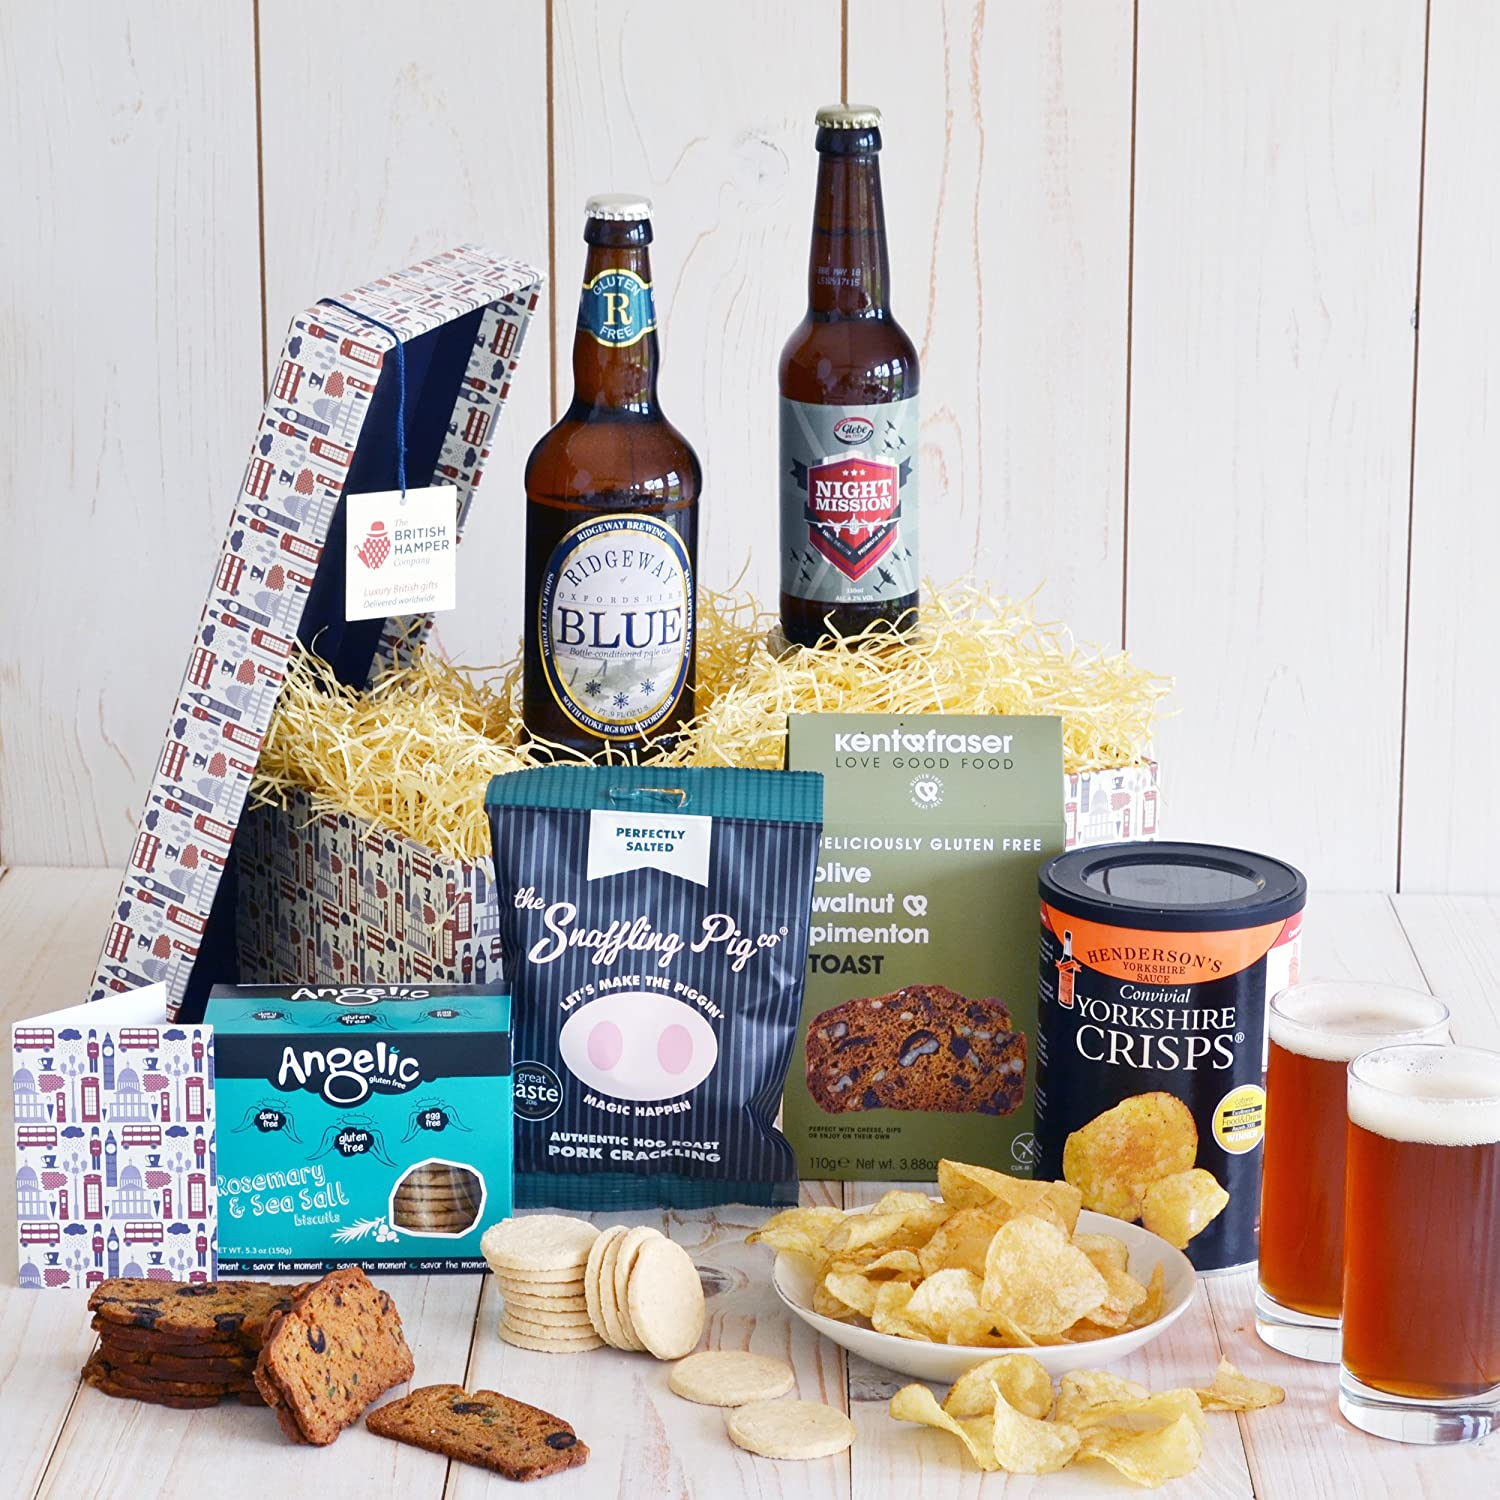 Gluten free beer and snacks hamper free uk express delivery gluten free beer and snacks hamper free uk express delivery gift card included amazon grocery negle Images